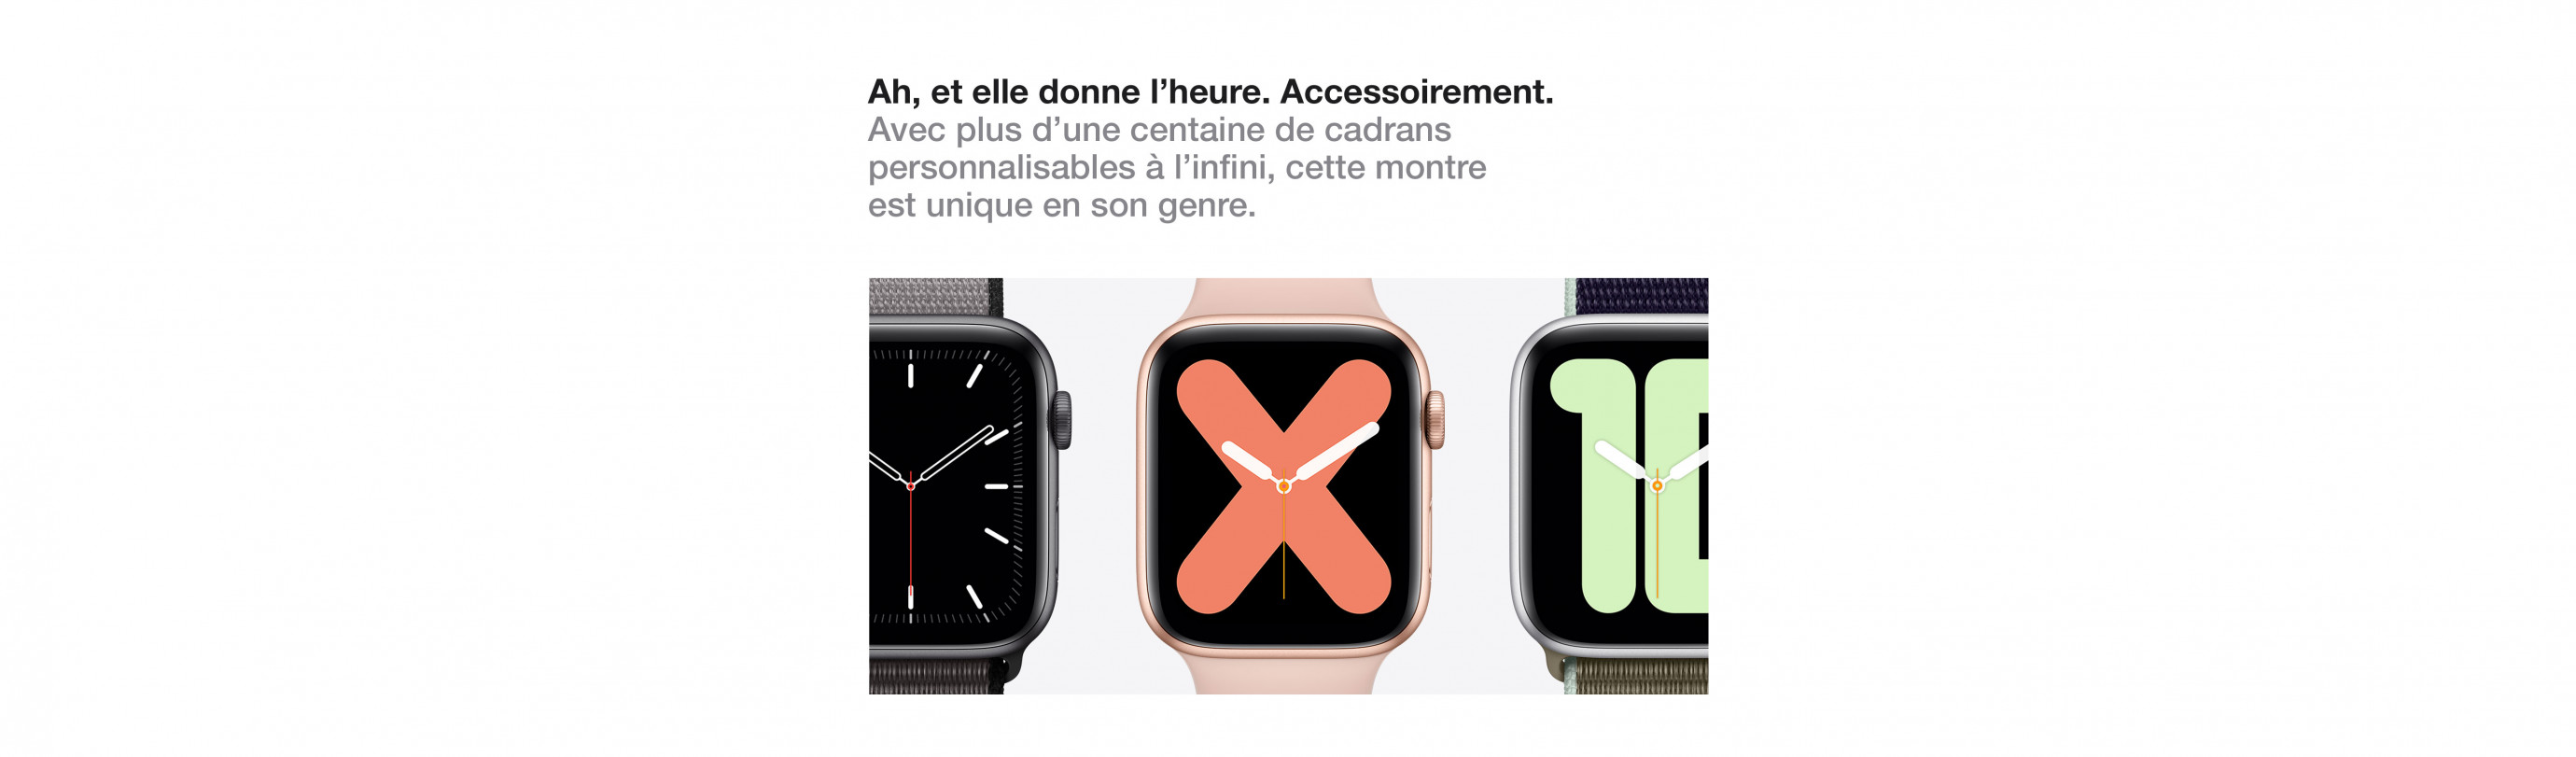 AppleWatchSeries5-productpage_fr_08.jpg